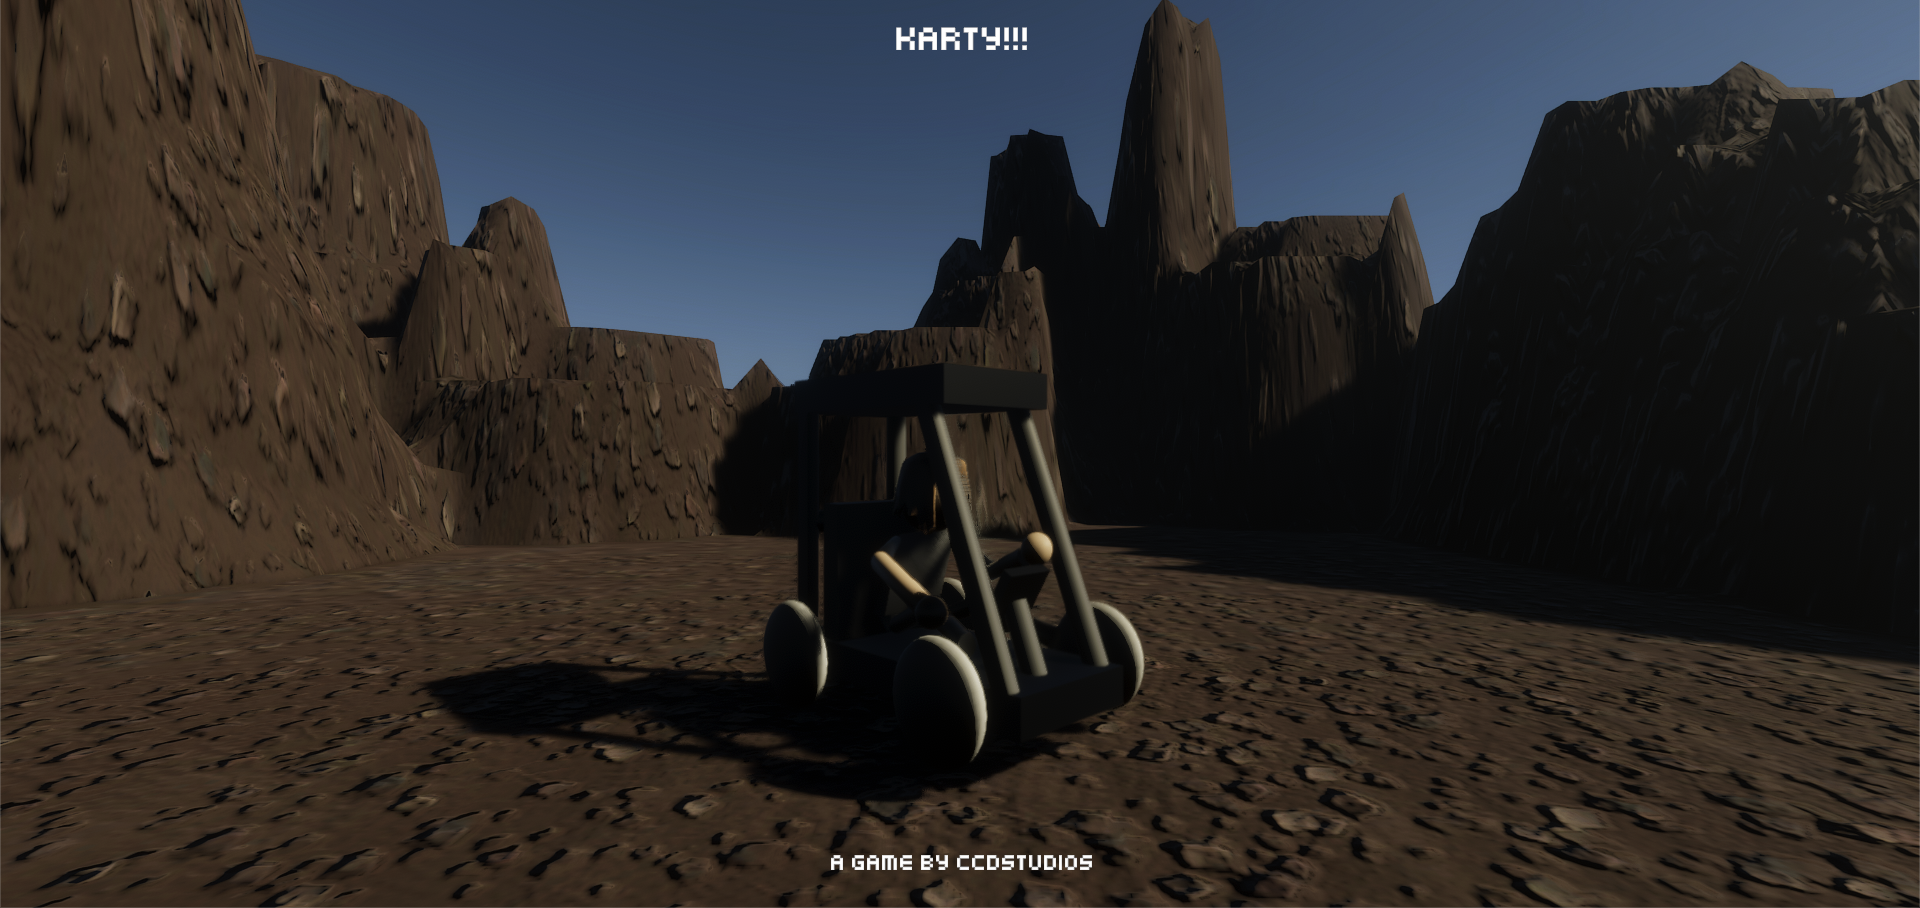 Karty - Golf Cart Racing Simulator